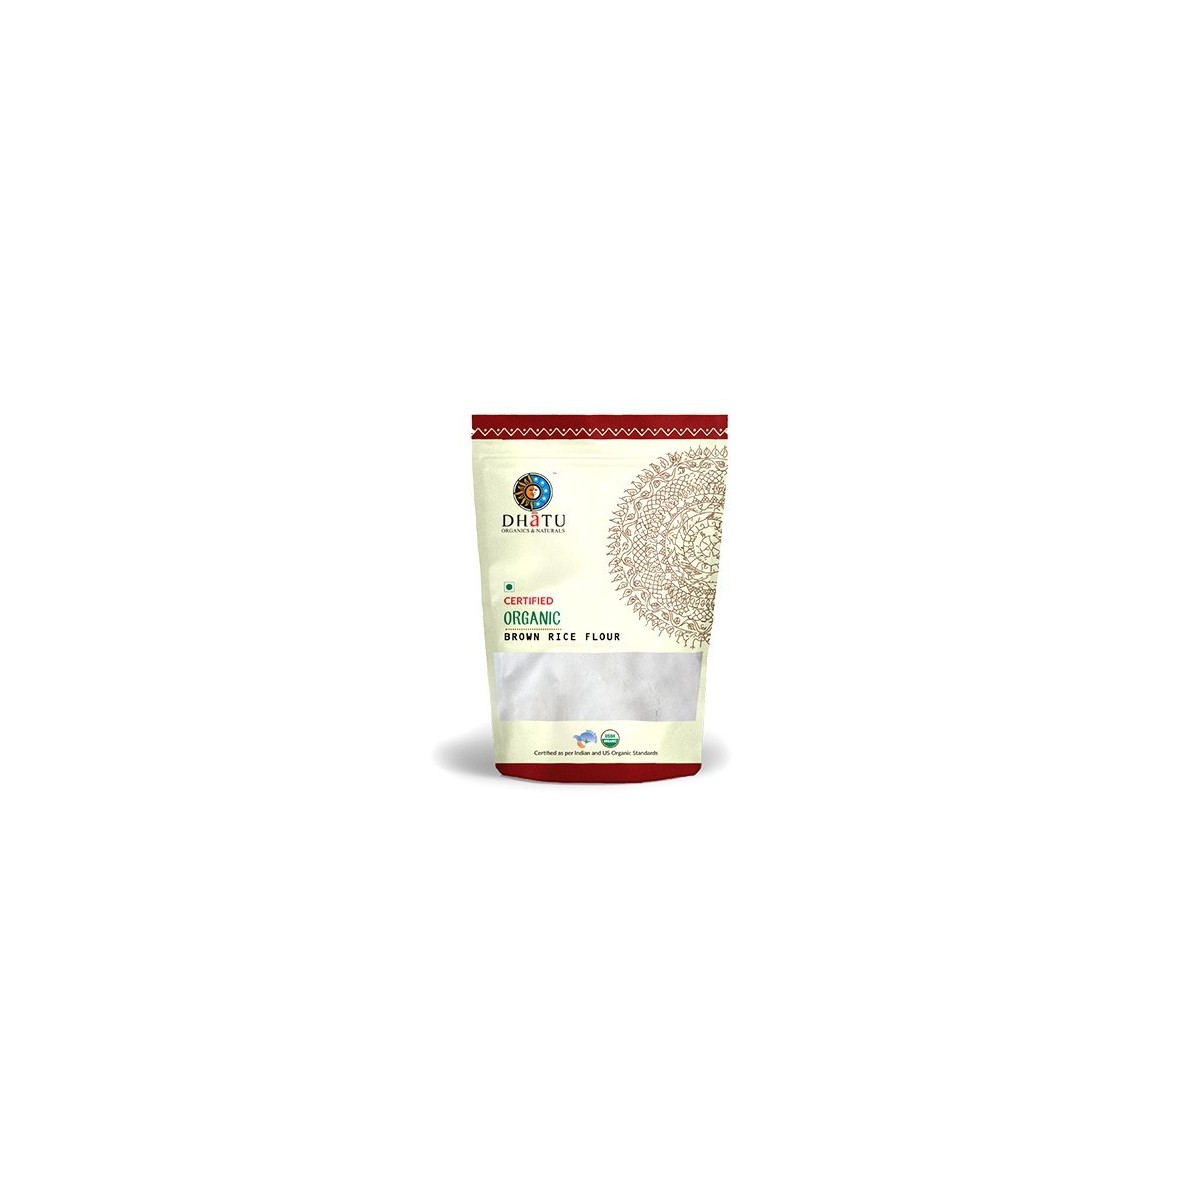 Dhatu Organics Brown Rice Flour - Stone Ground